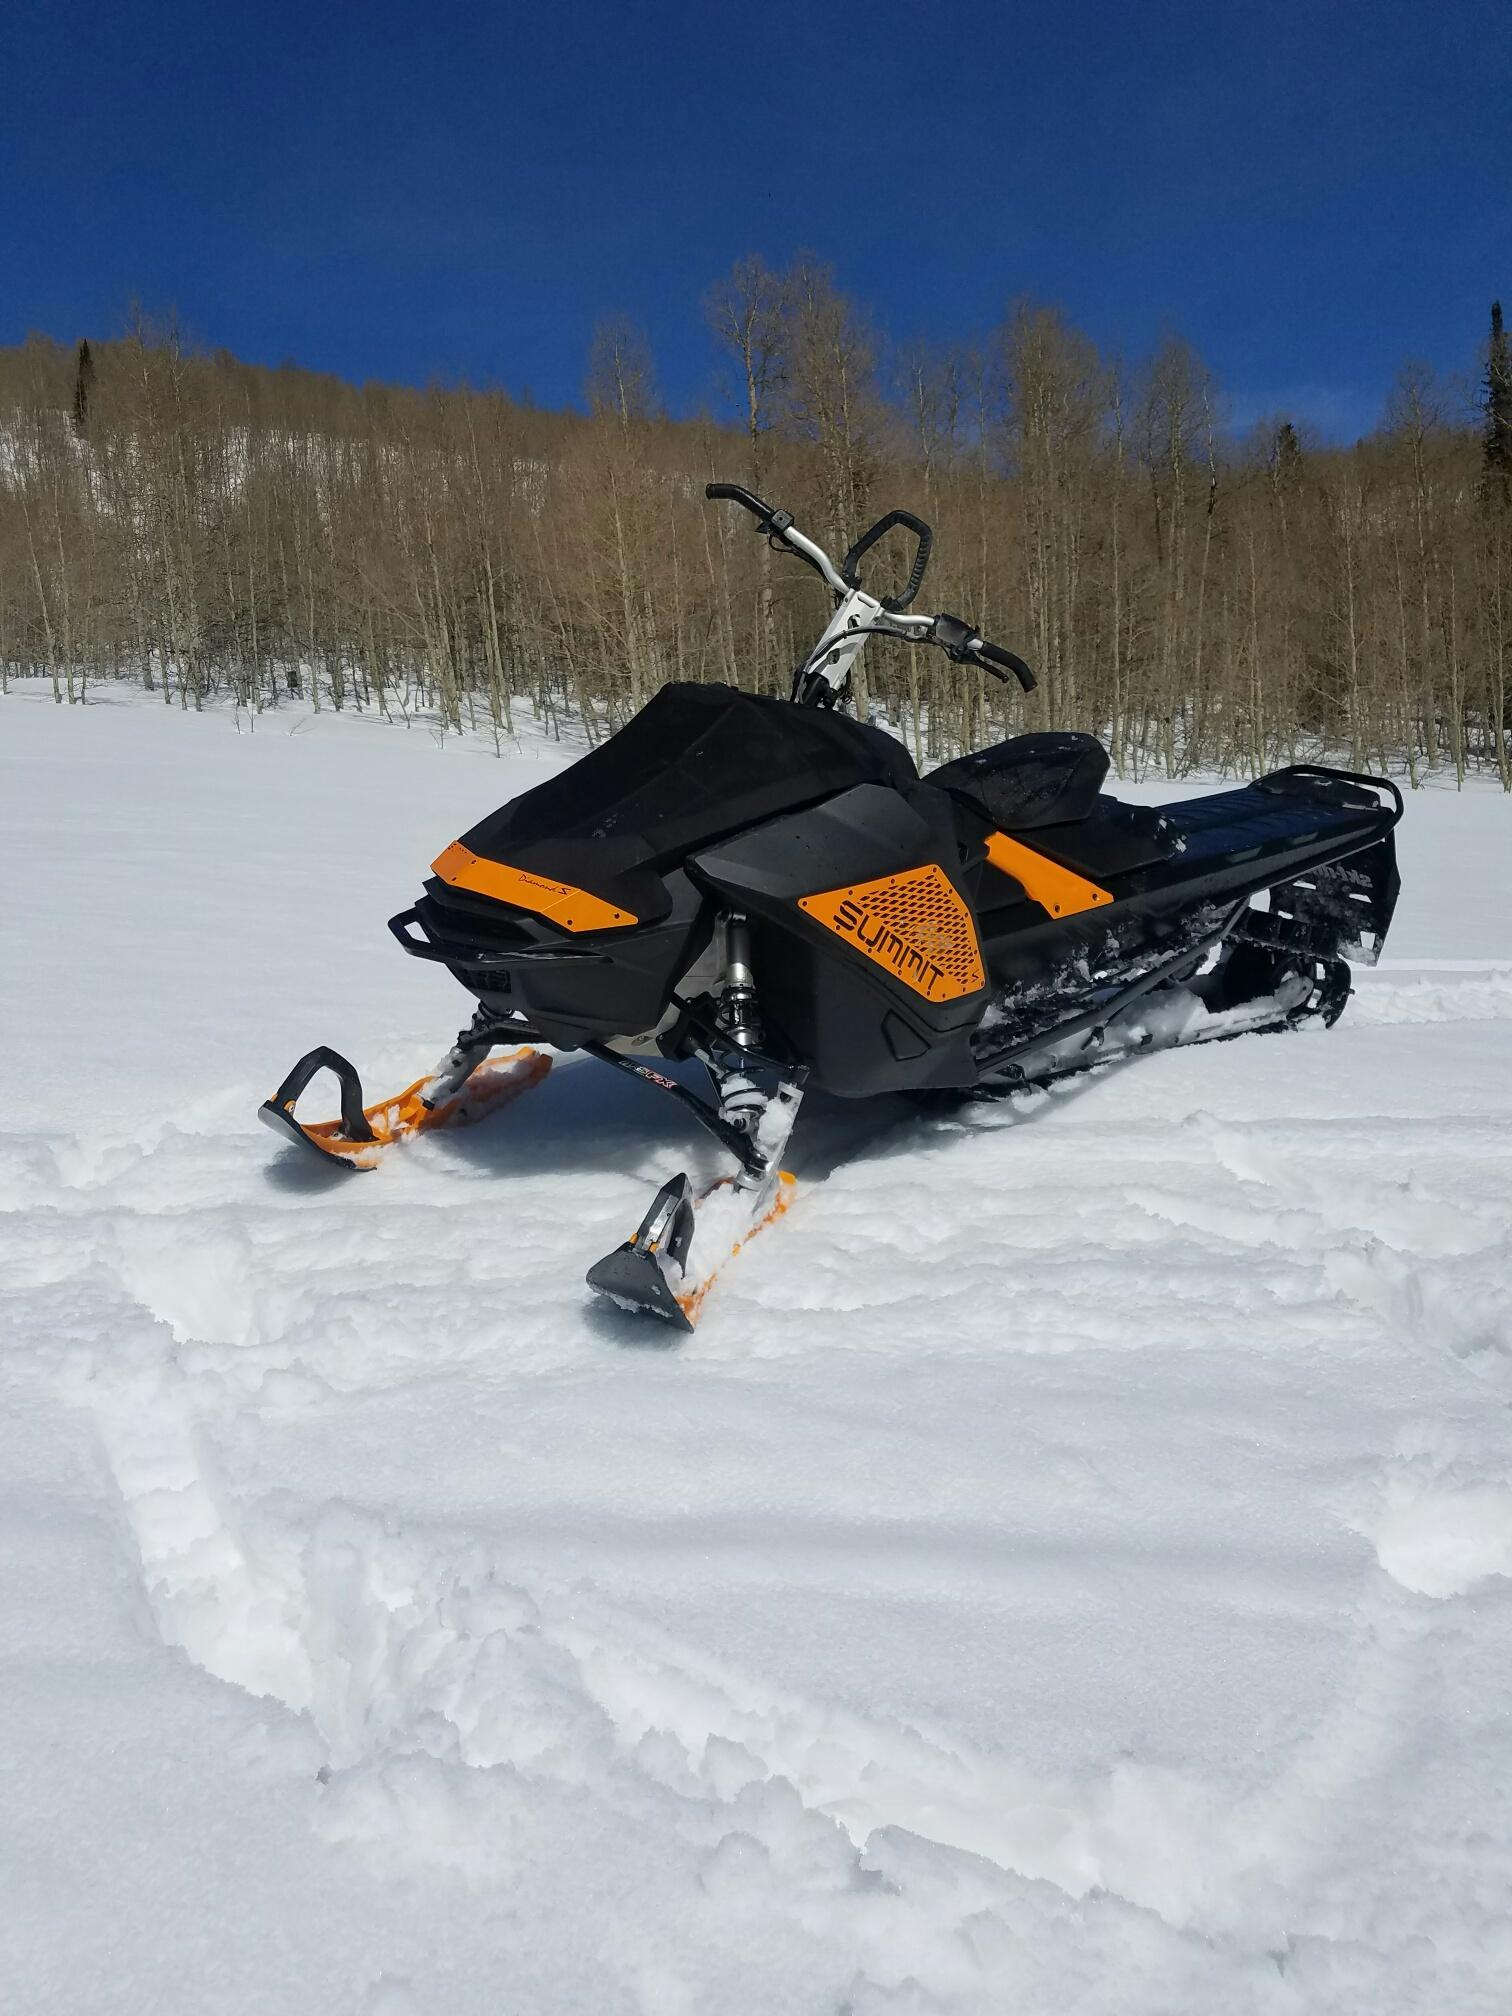 344 ski doo stock images are available royalty-free.